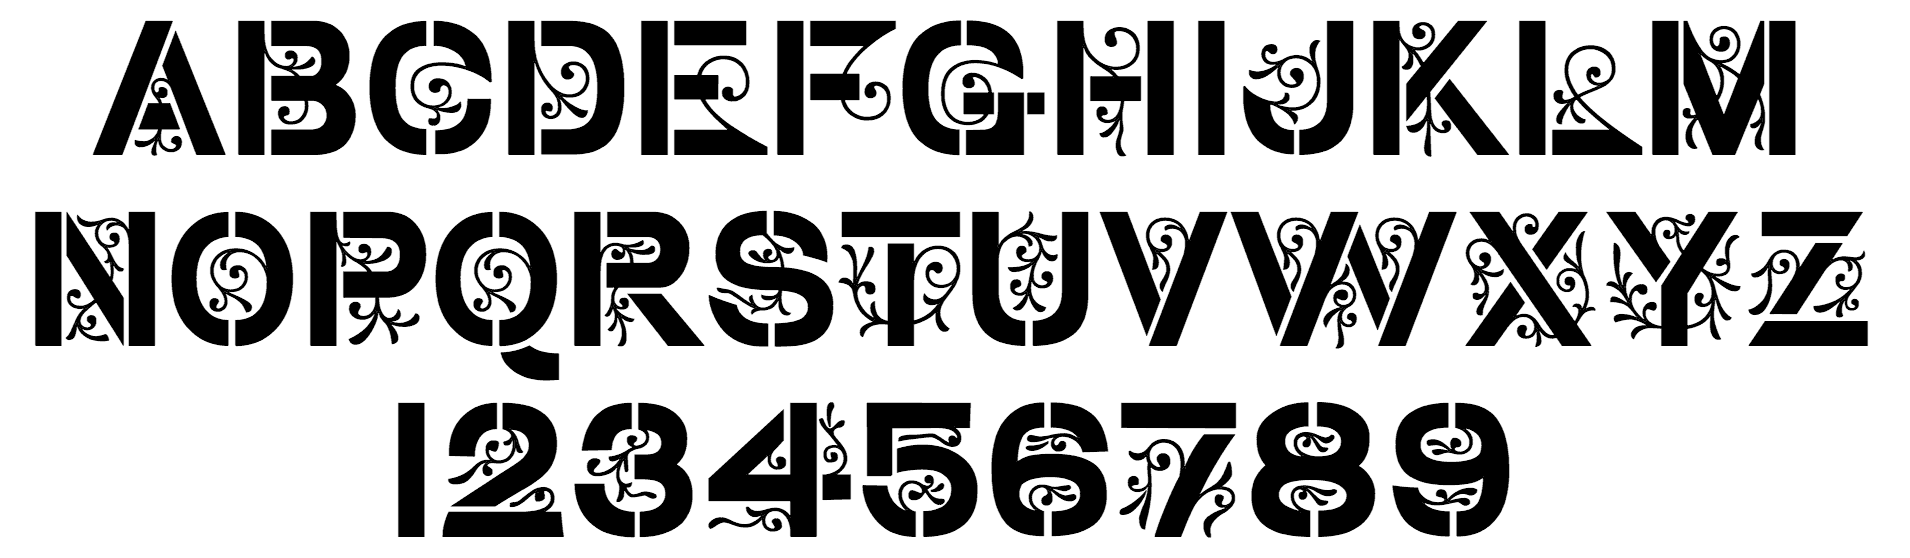 Basic character set of the typeface Stencil Gothic